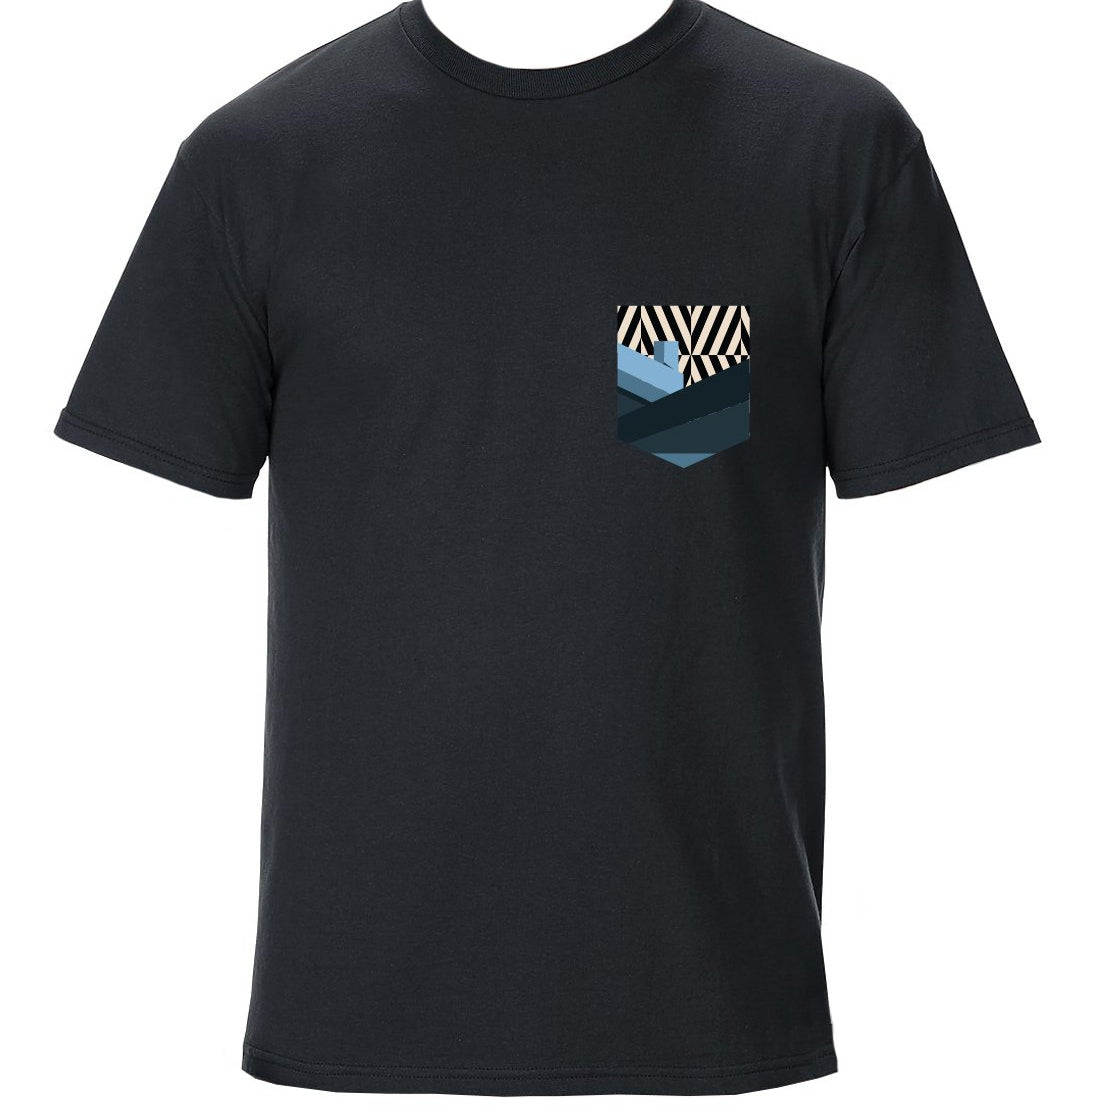 TRAV MSK LIMITED EDITION POCKET T-SHIRT (BLACK / BLUE GRAPHIC)